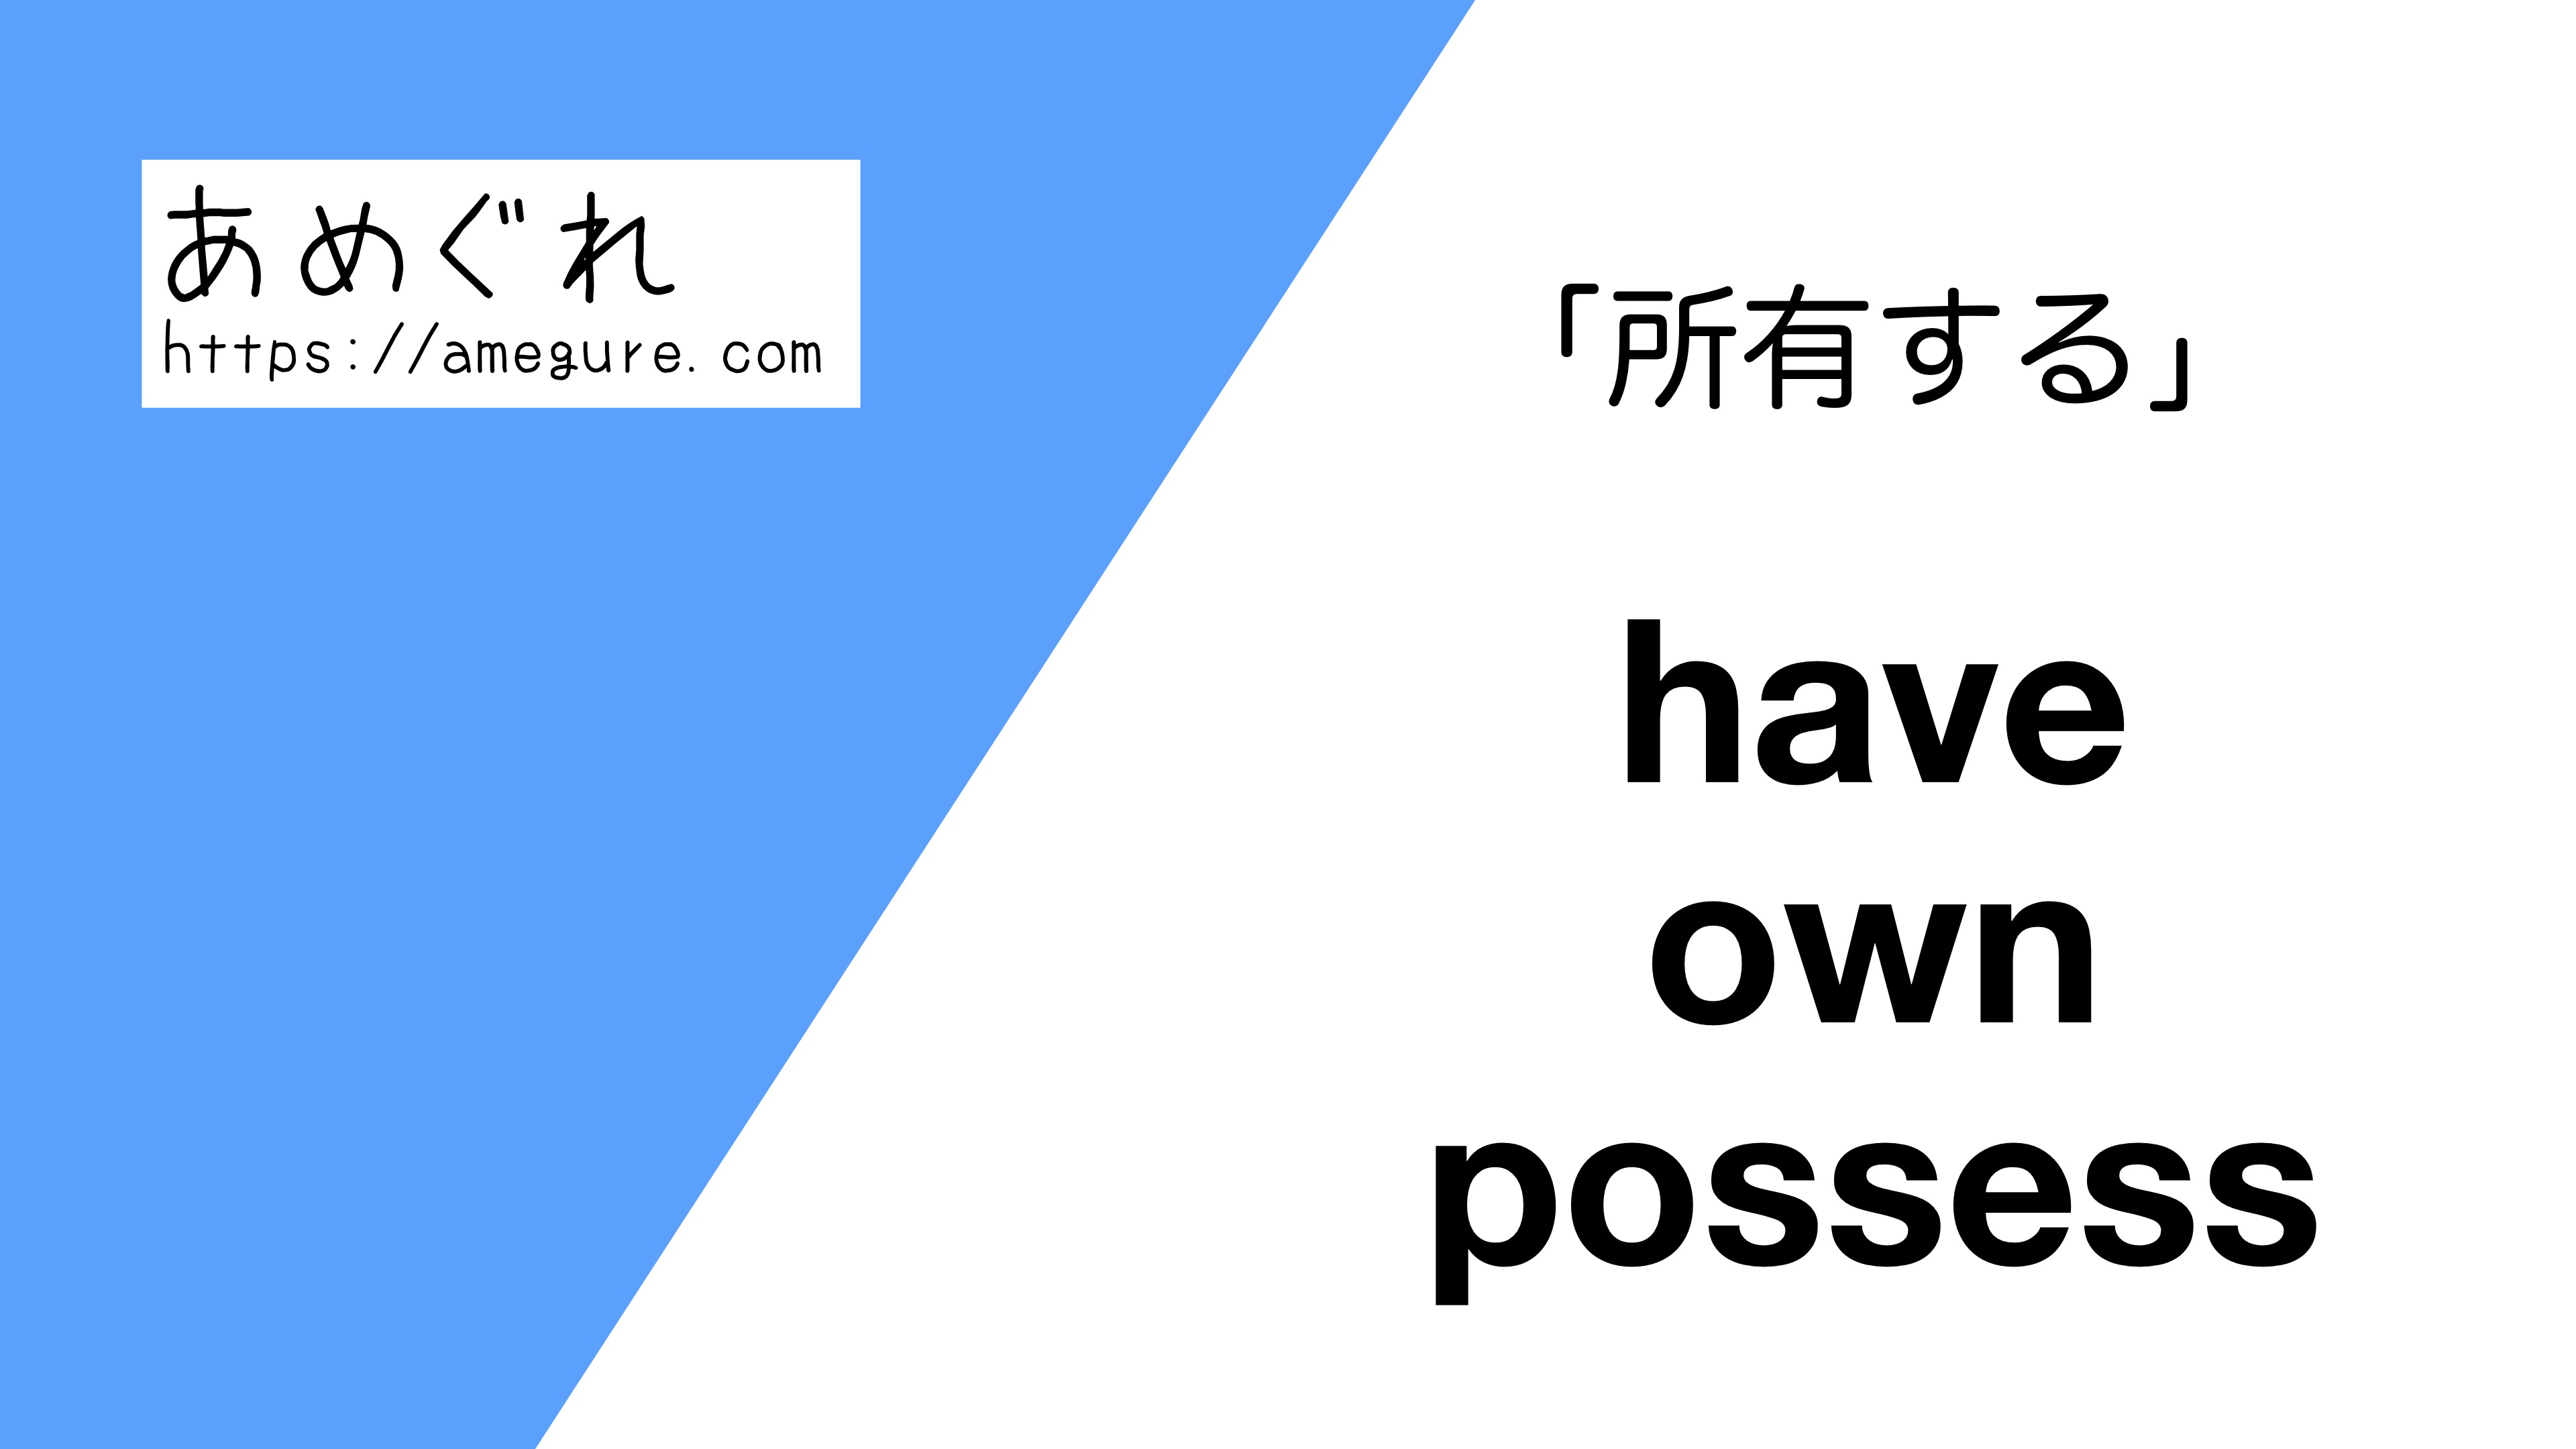 have-own-possess違い